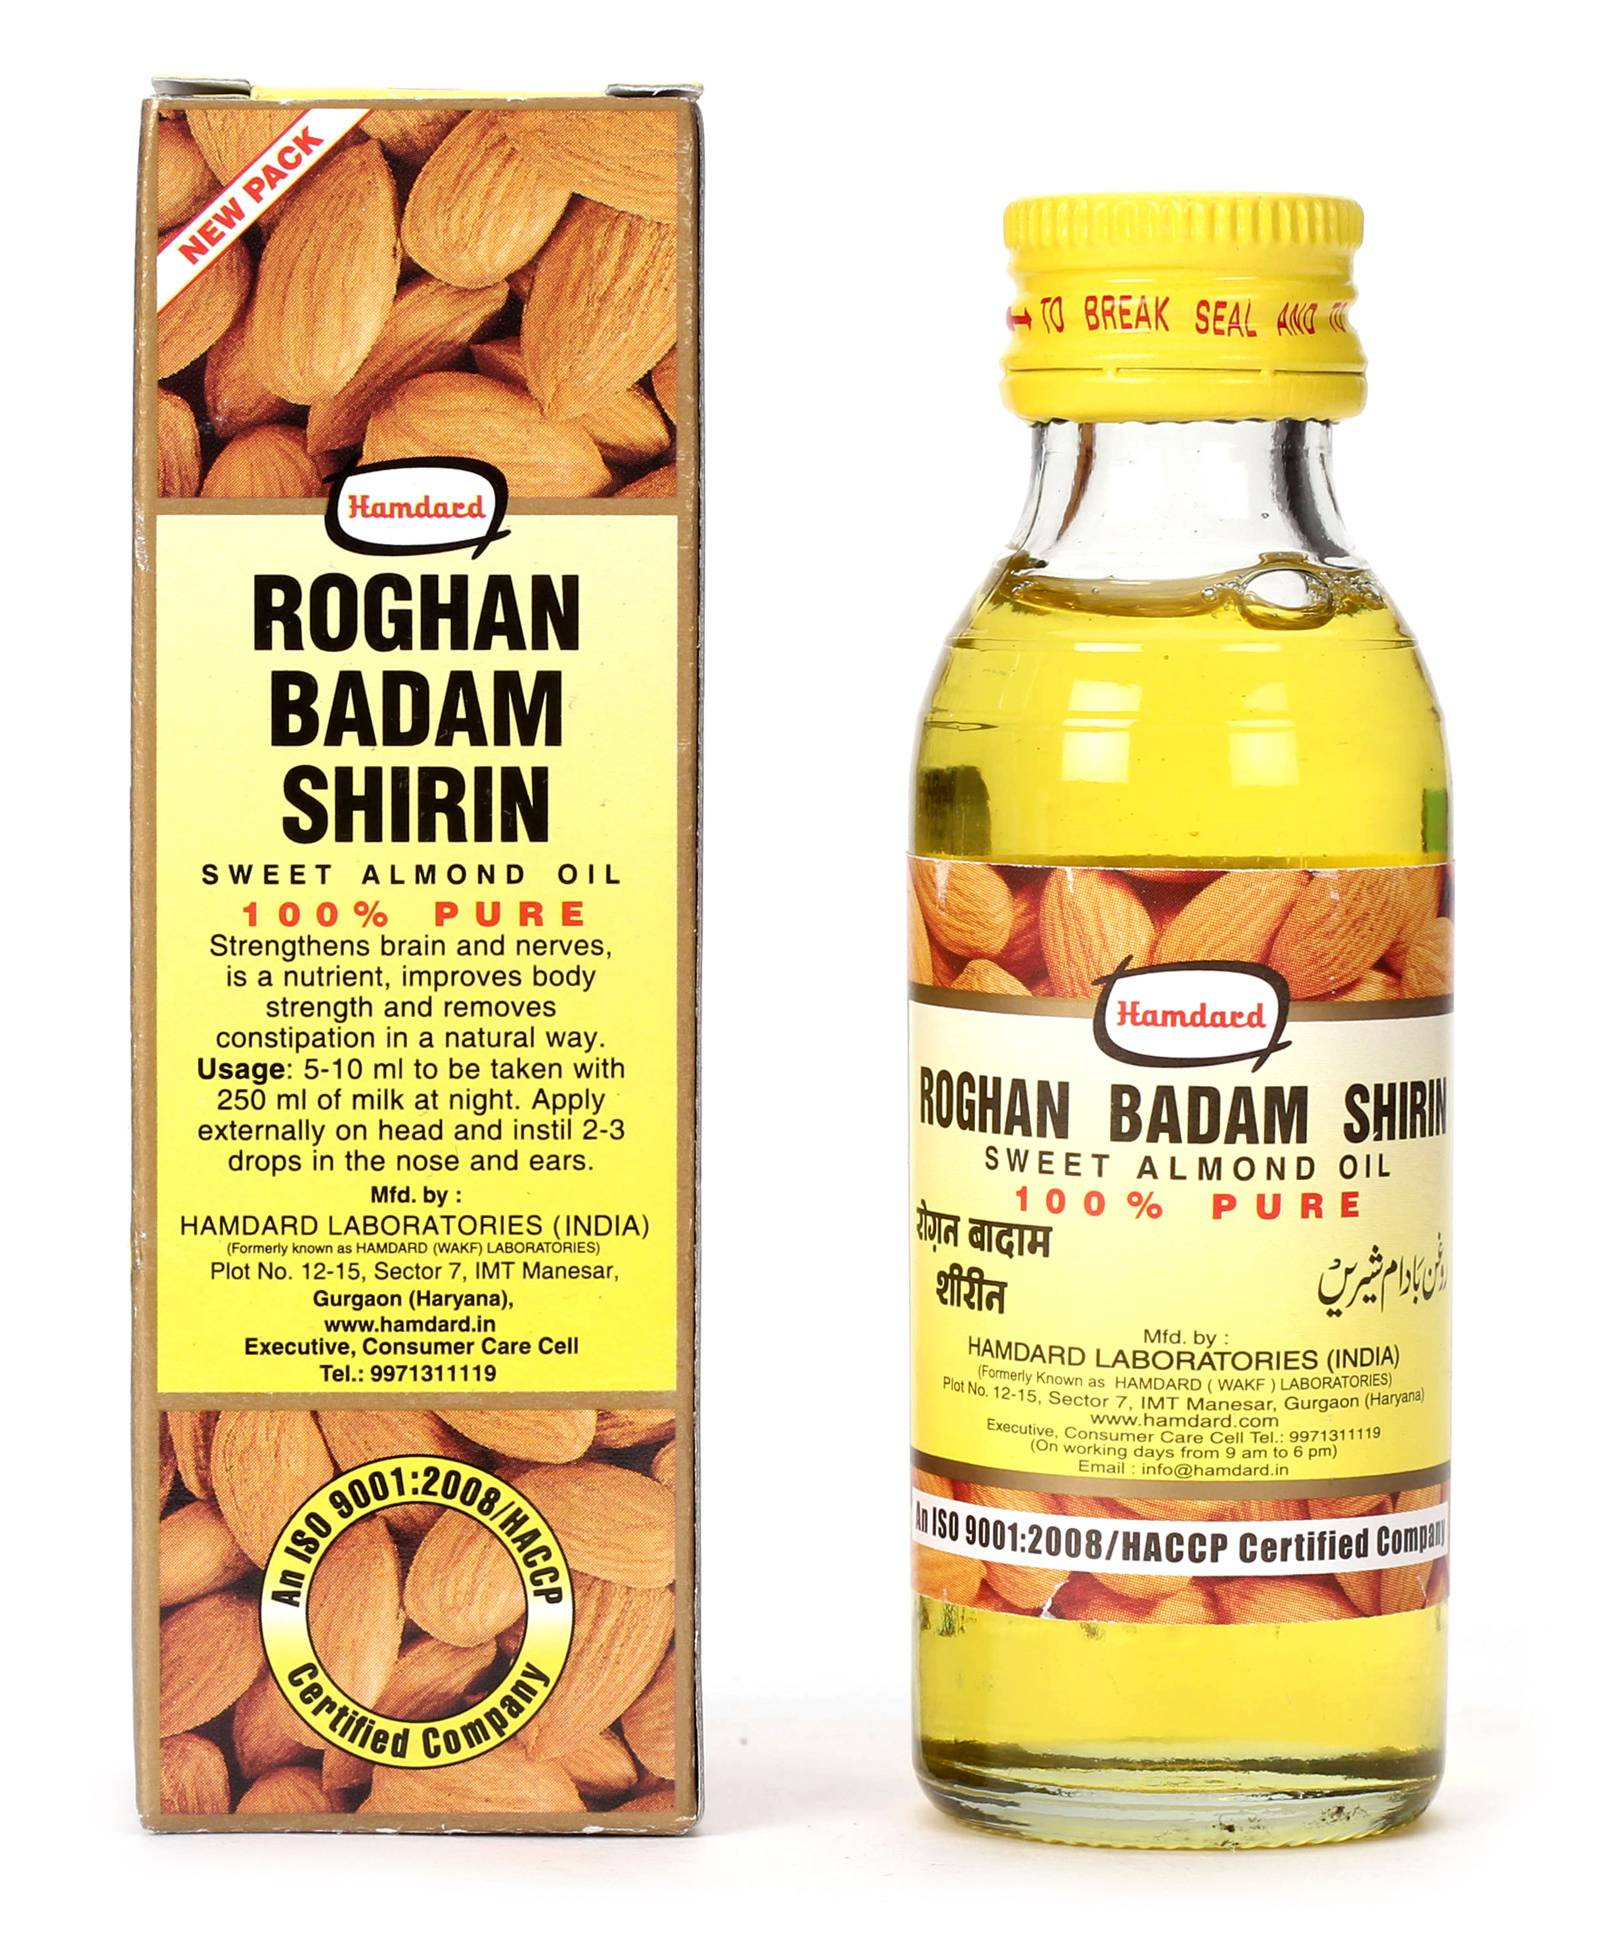 Hamdard Roghan Badam Shirin 50 Ml Online In India Buy At Best Price Buds Childrens Toothpaste 50ml 3 12 Year Green Apple Select Color